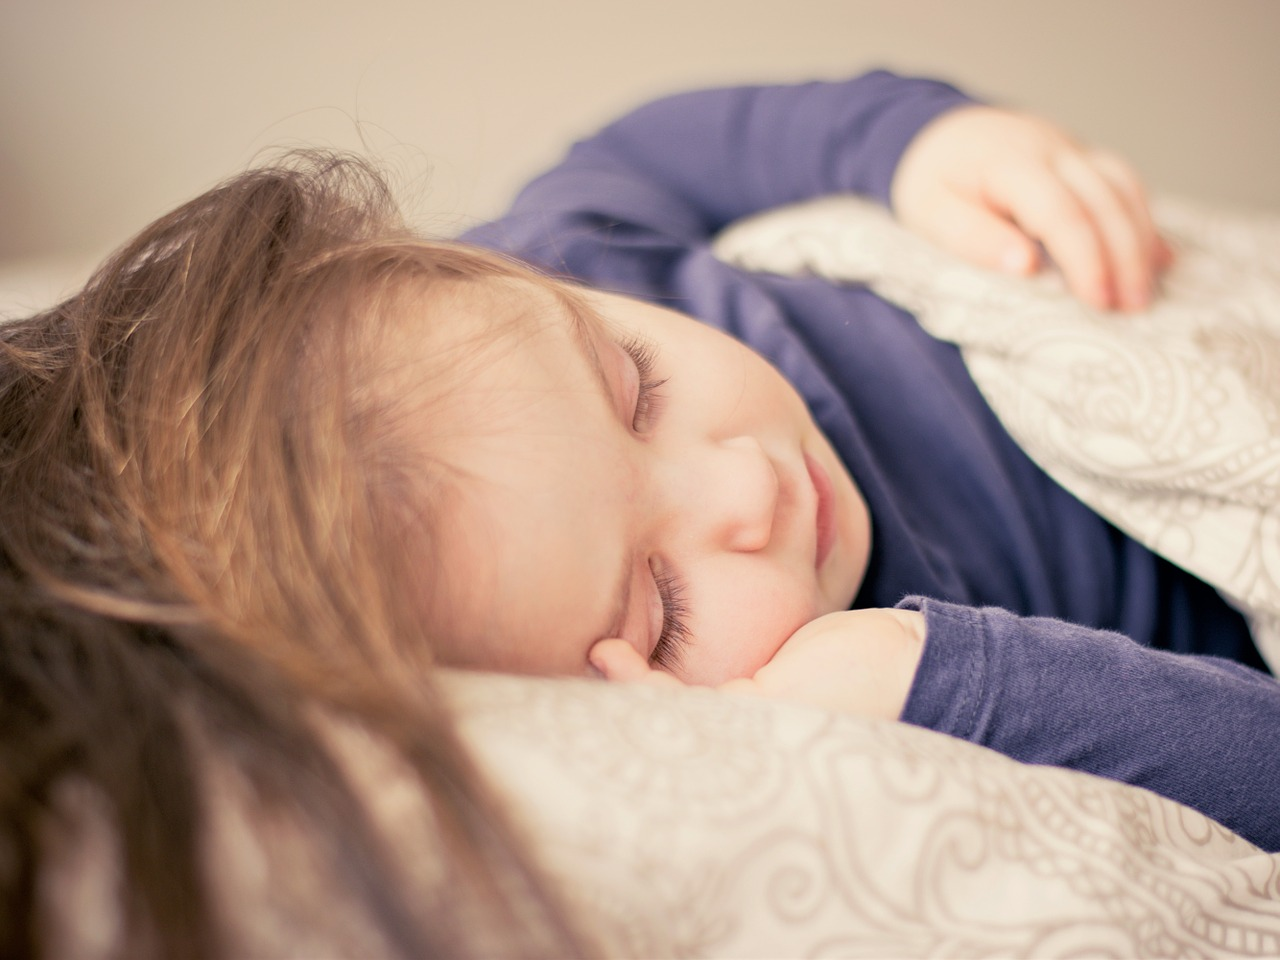 Signs Your Child Should Be Evaluated for Sleep-Disordered Breathing (SDB)